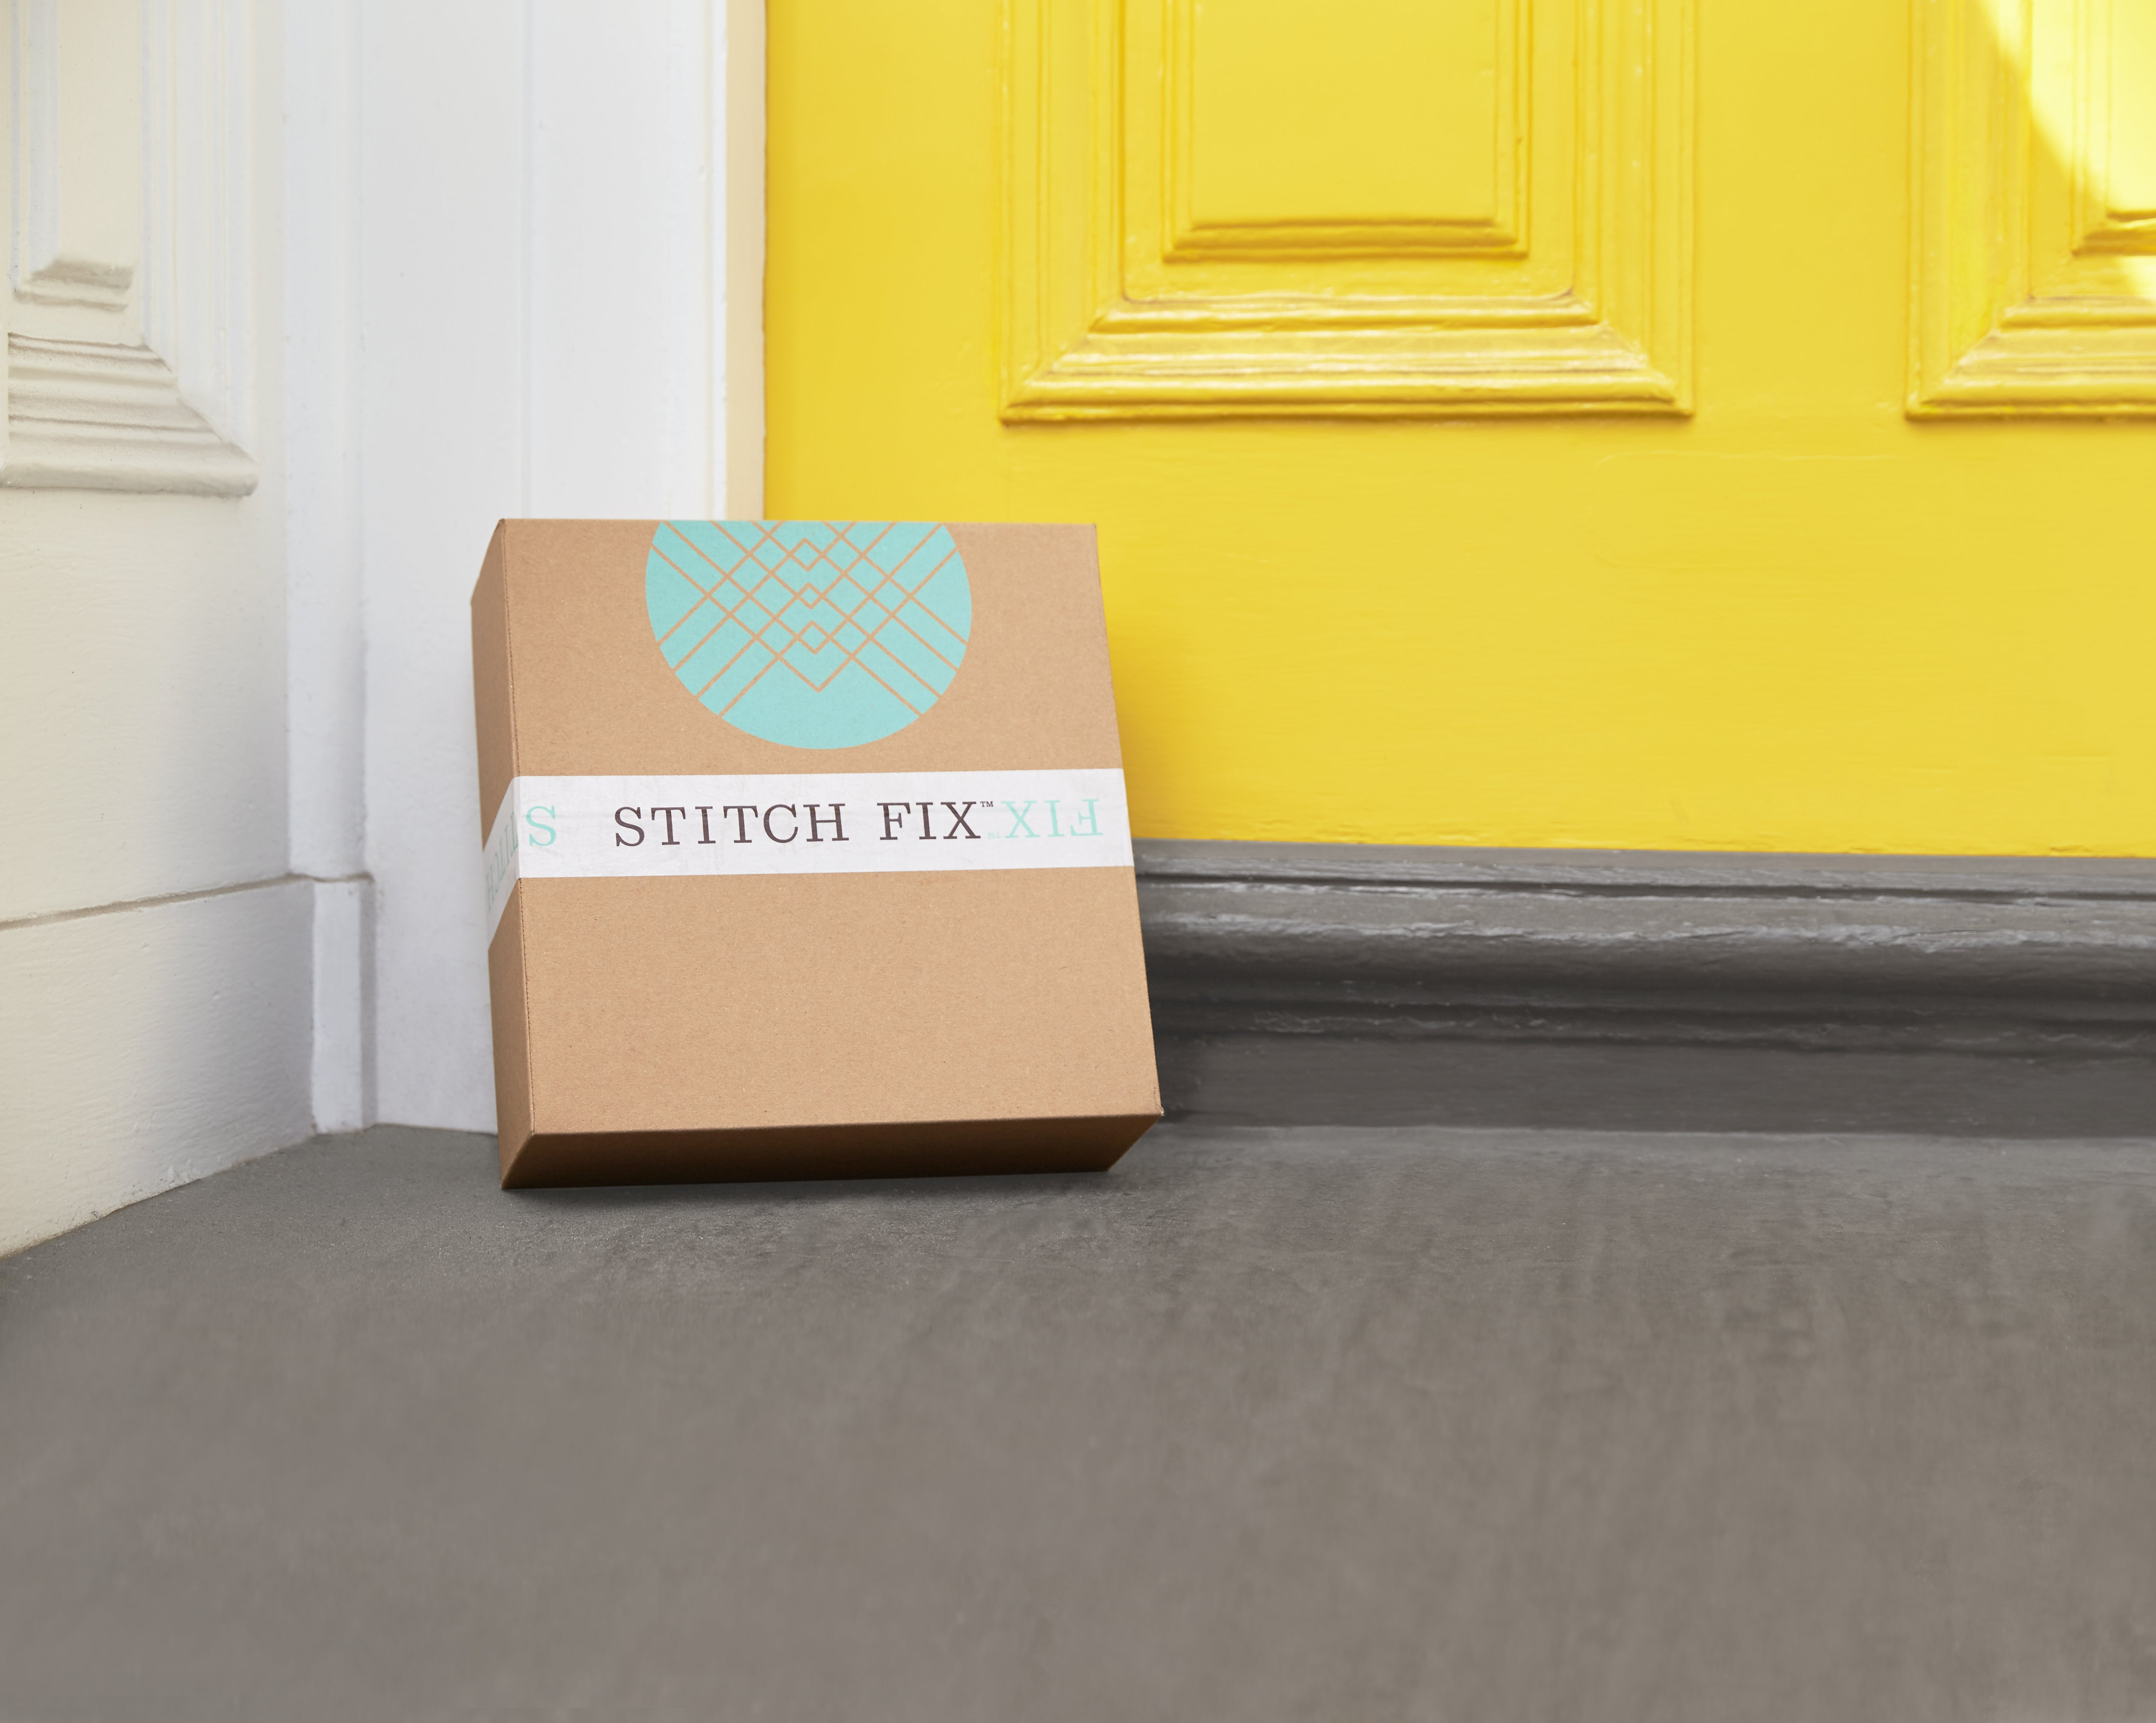 Stitch Fix Stock is Suddenly Hot. Here's Why.